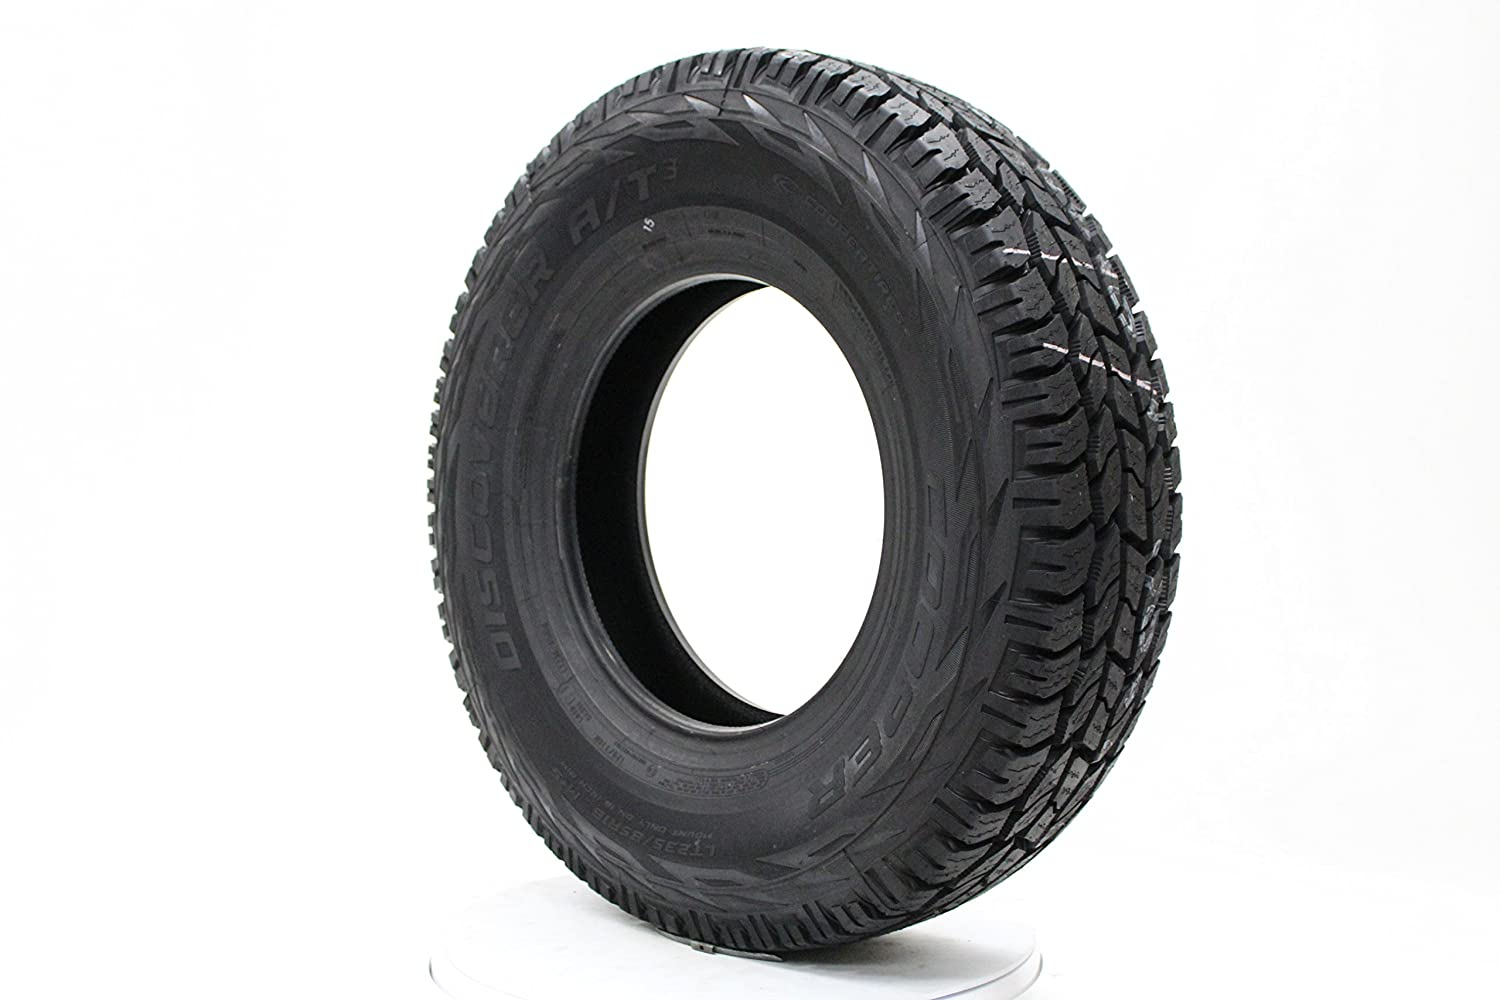 Cooper DISCOVERER A/T3 All-Terrain Radial Tire - 225/75-17 120R 51734